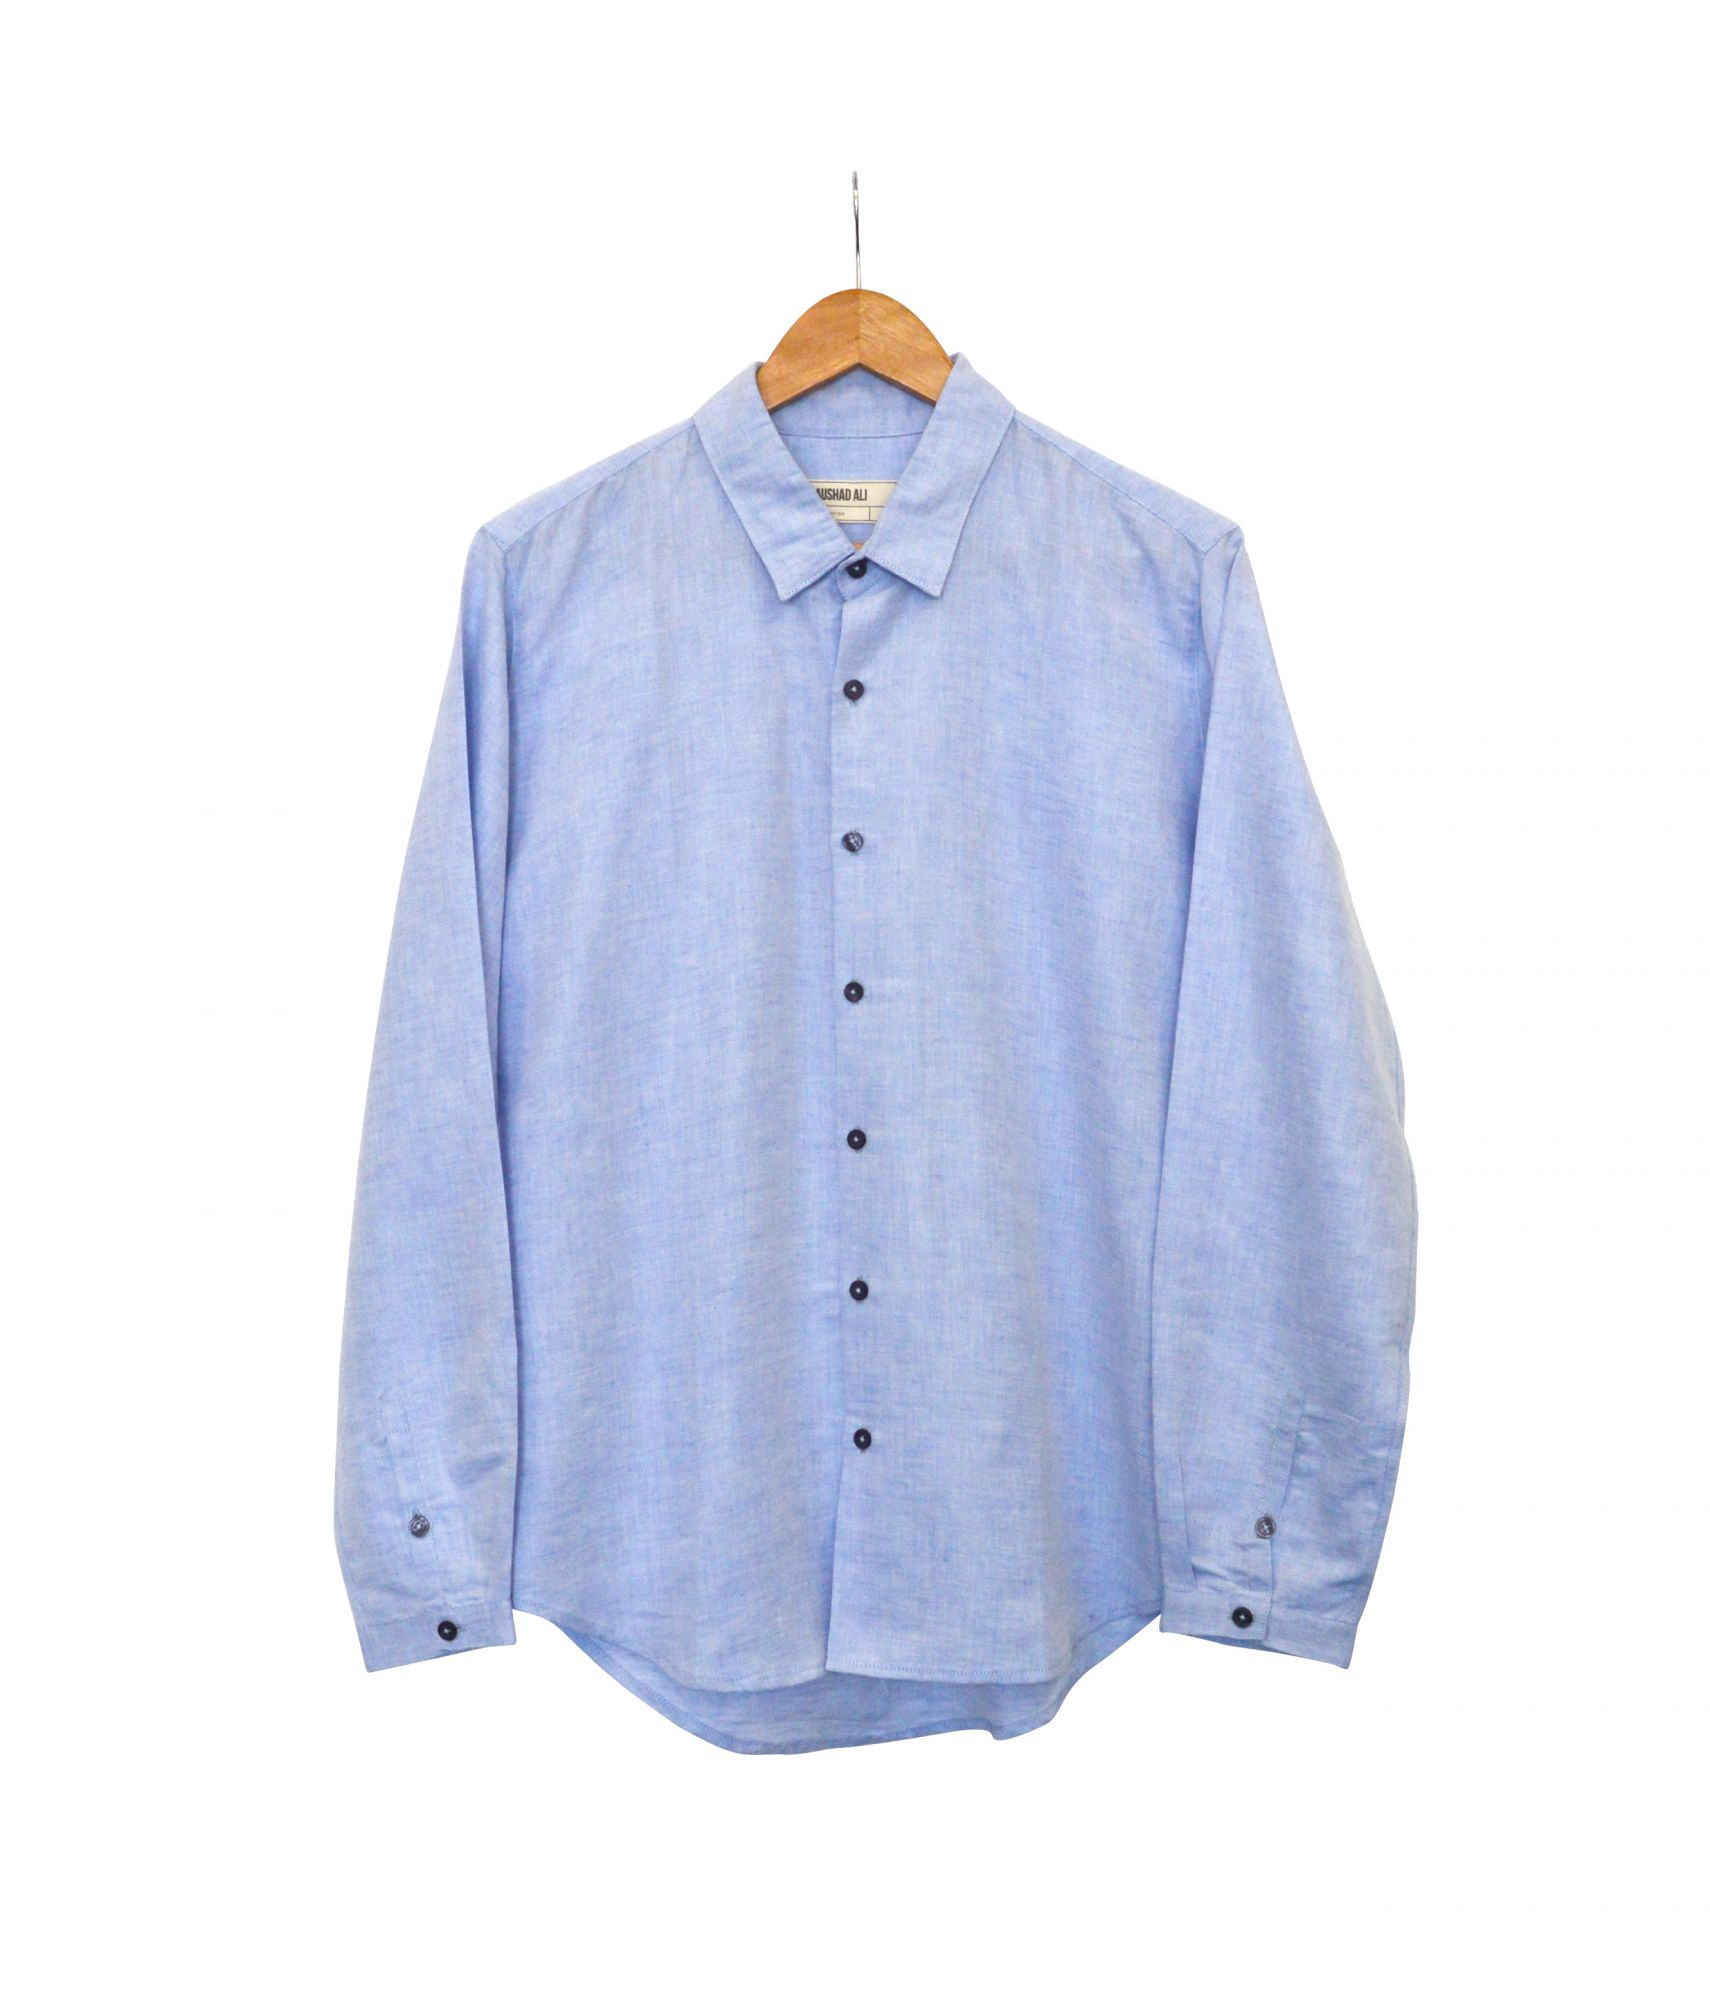 Good fella Shirt - Linen - Robin blue